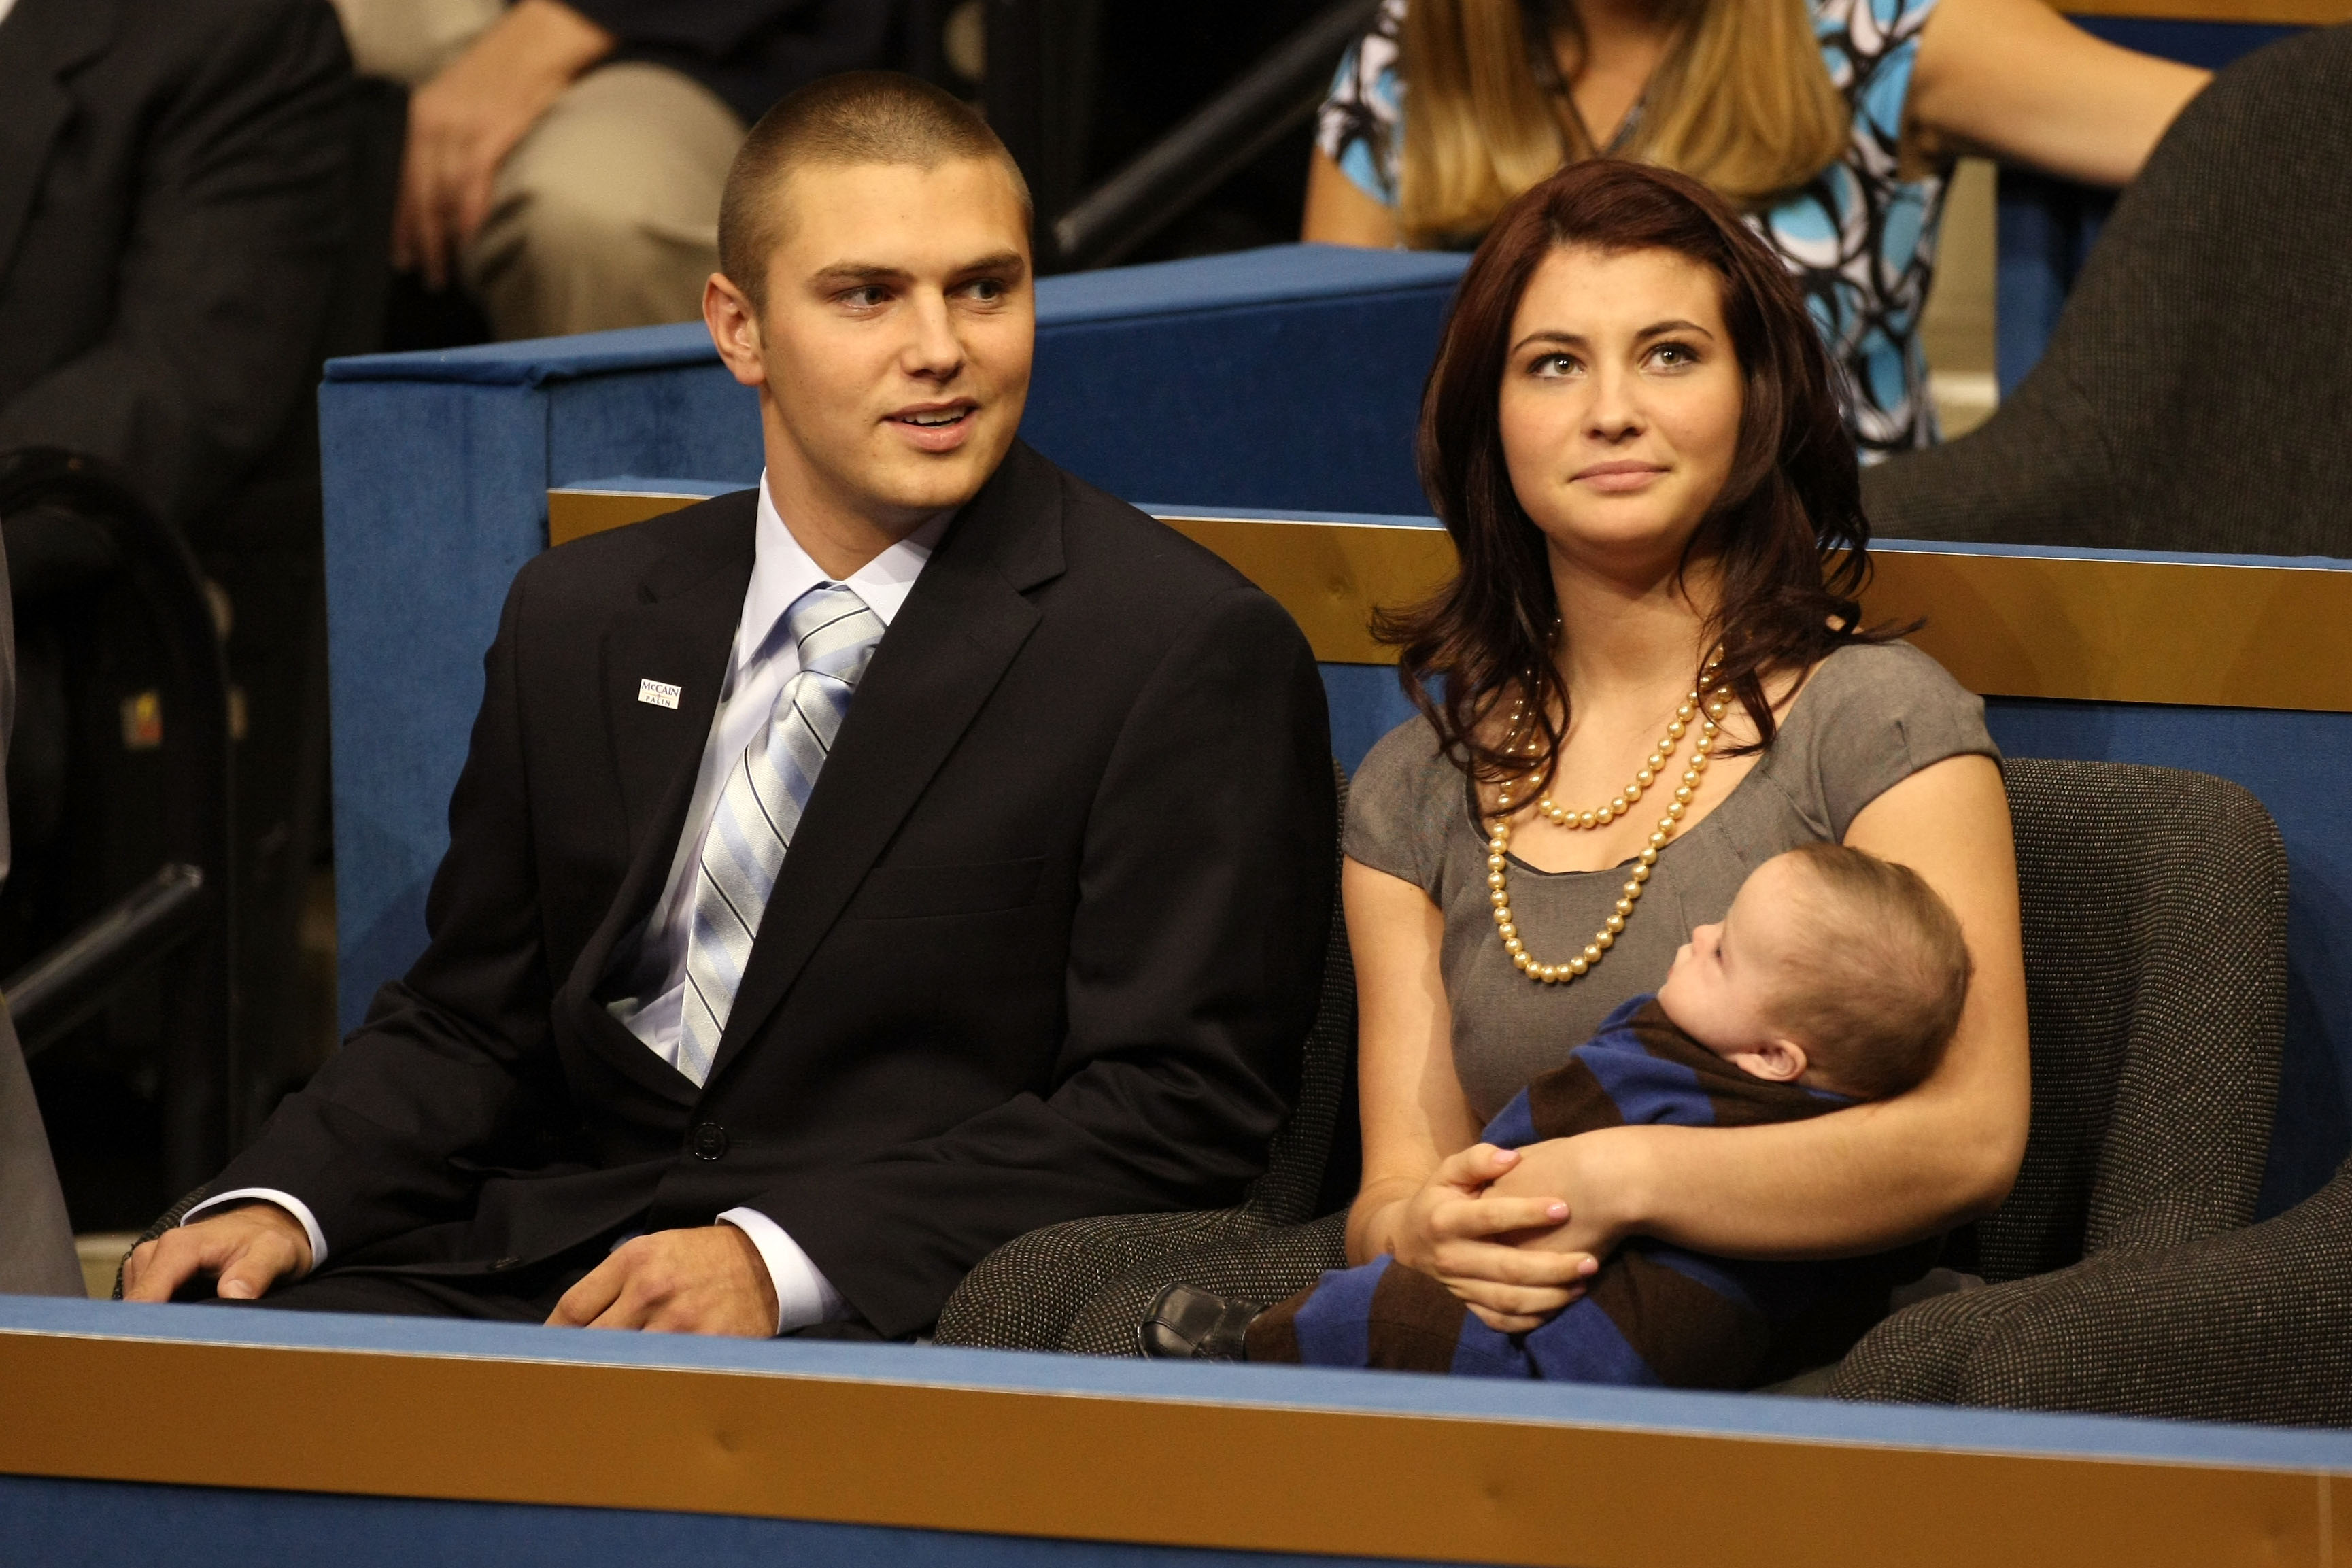 Track Palin sits with Willow Palin holding Trig Palin at the Republican National Convention (RNC) on September 3, 2008 in St. Paul, Minnesota.